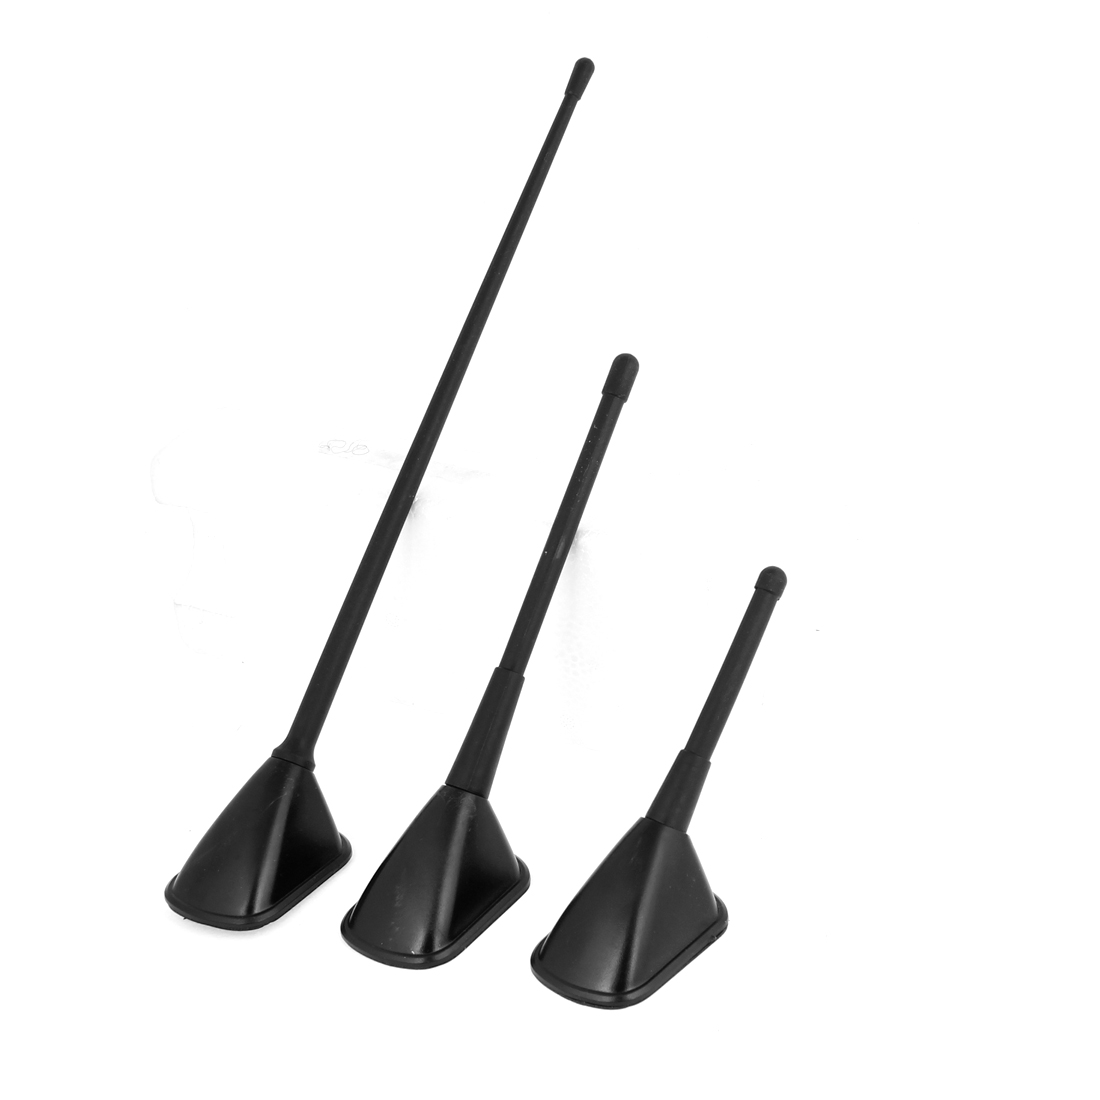 3 in 1 Black Plastic Exterior FM AM Dummy Antenna for Auto